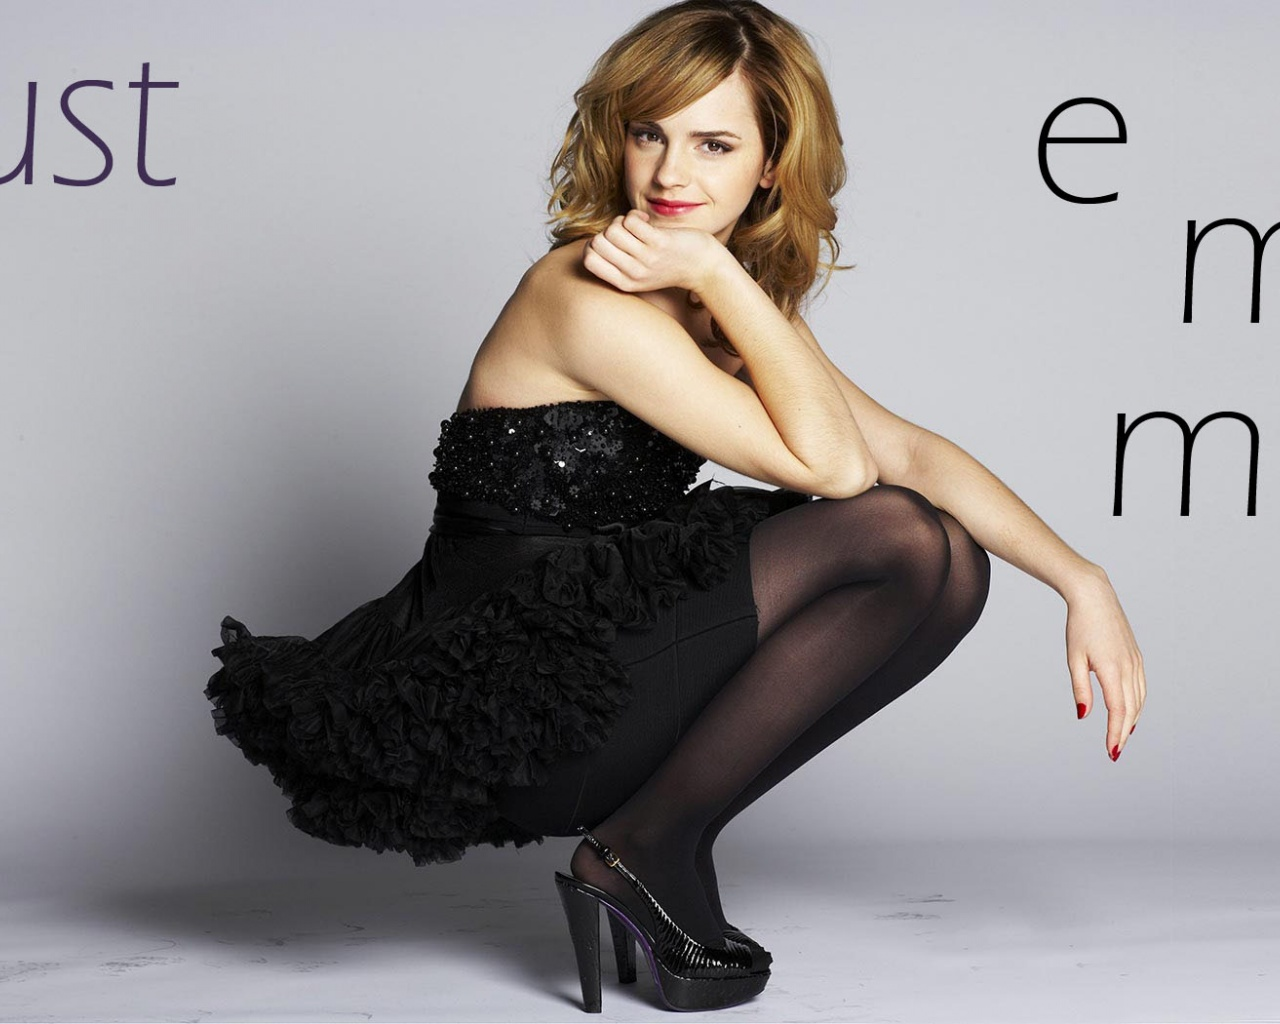 click to free download the wallpaper--Amazing TV Show Pics, Emma Watson in Black Dress, High Heeled Shoes, a Graceful Lady 1280X1024 free wallpaper download